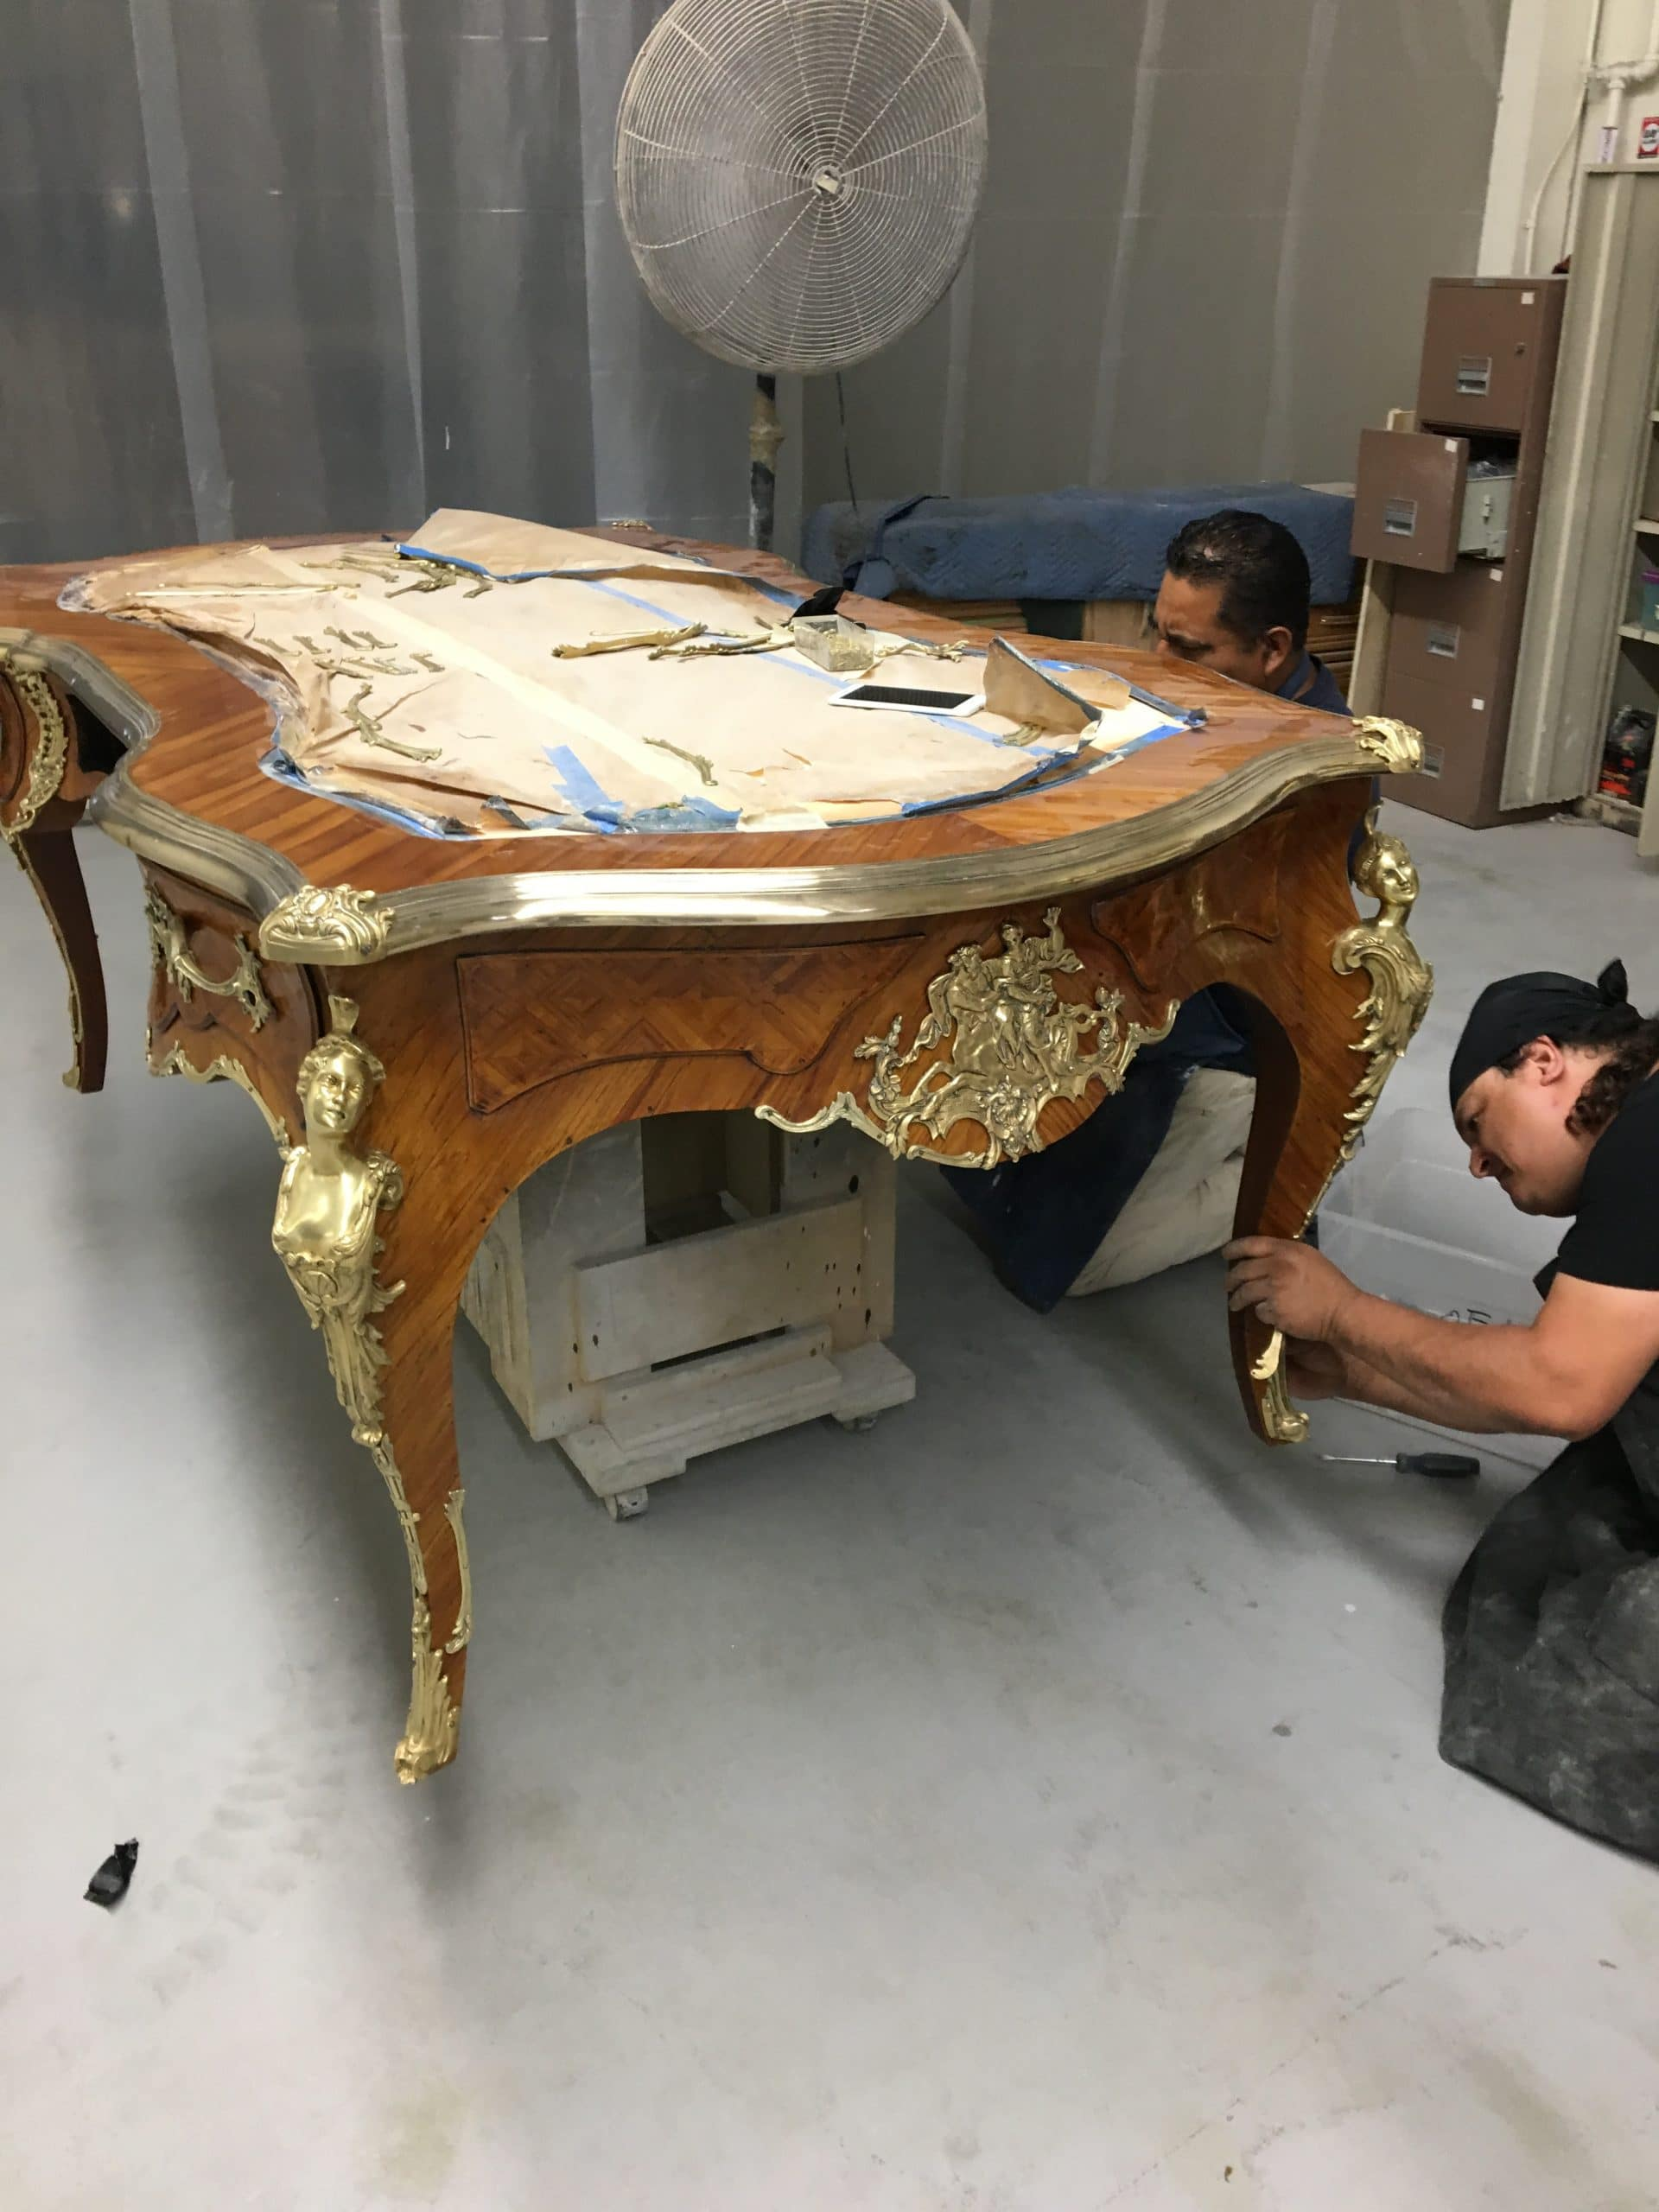 Why Choose Capelli Antiques For All Your Furniture Restoration & Refinishing Needs in Orange County?